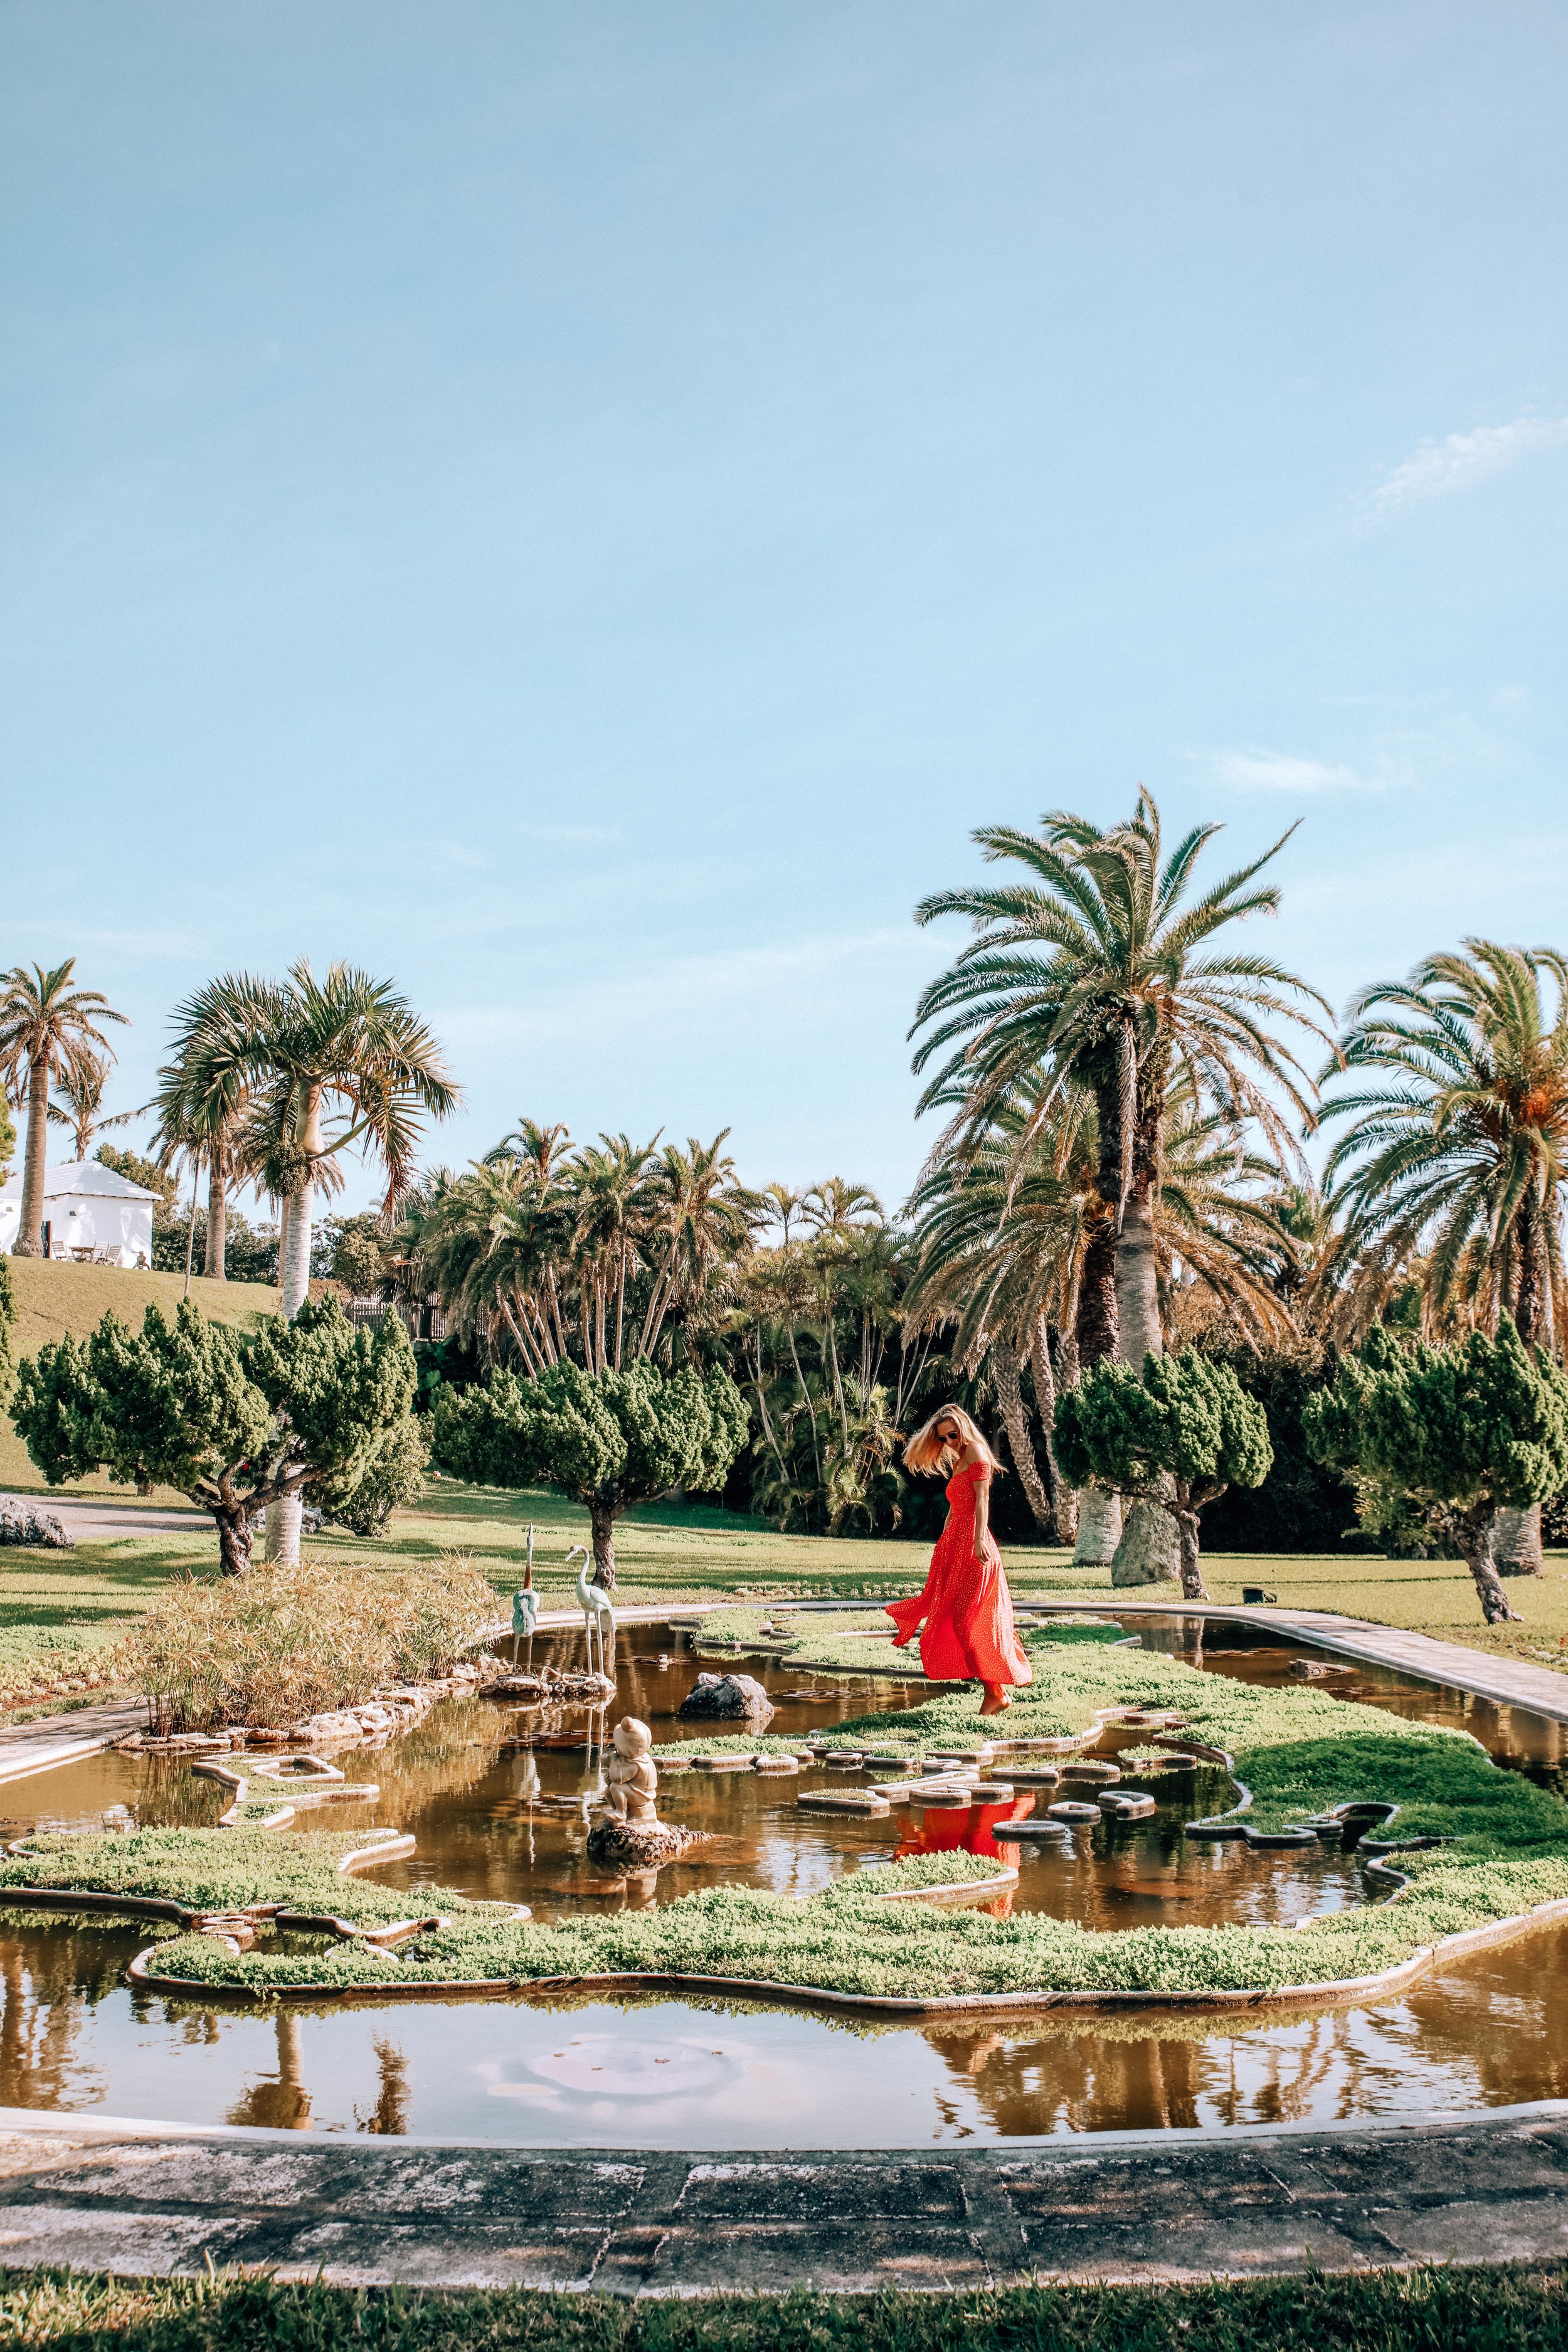 Palm Grove Gardens - The pond which is shaped like the Bermuda!